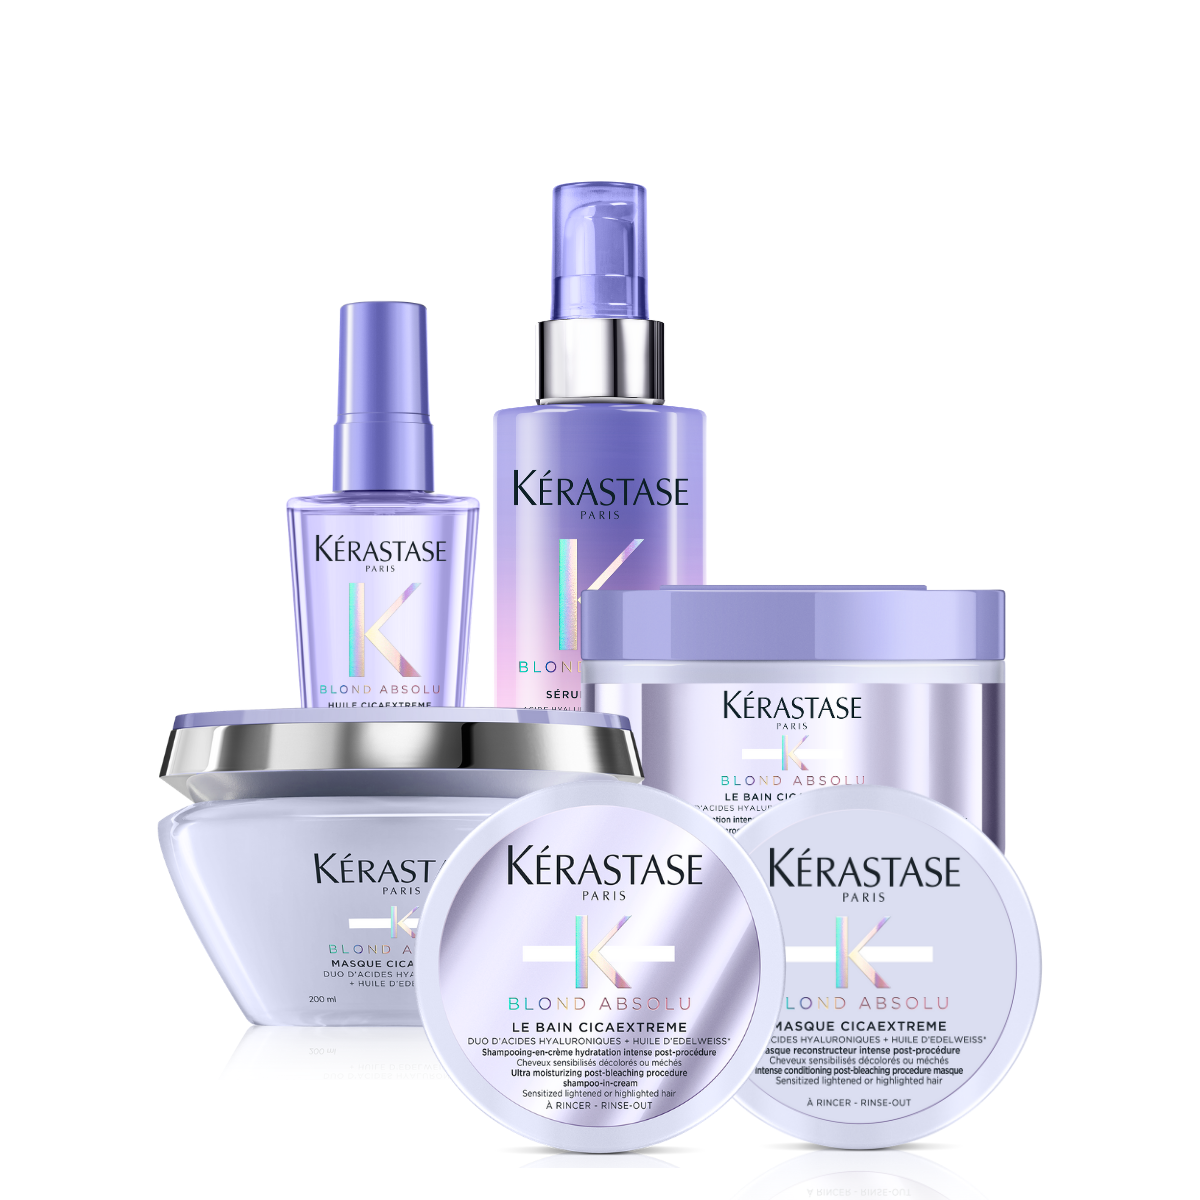 Kerastase Blond Absolu Cicaextreme Restoring Solution Bundle